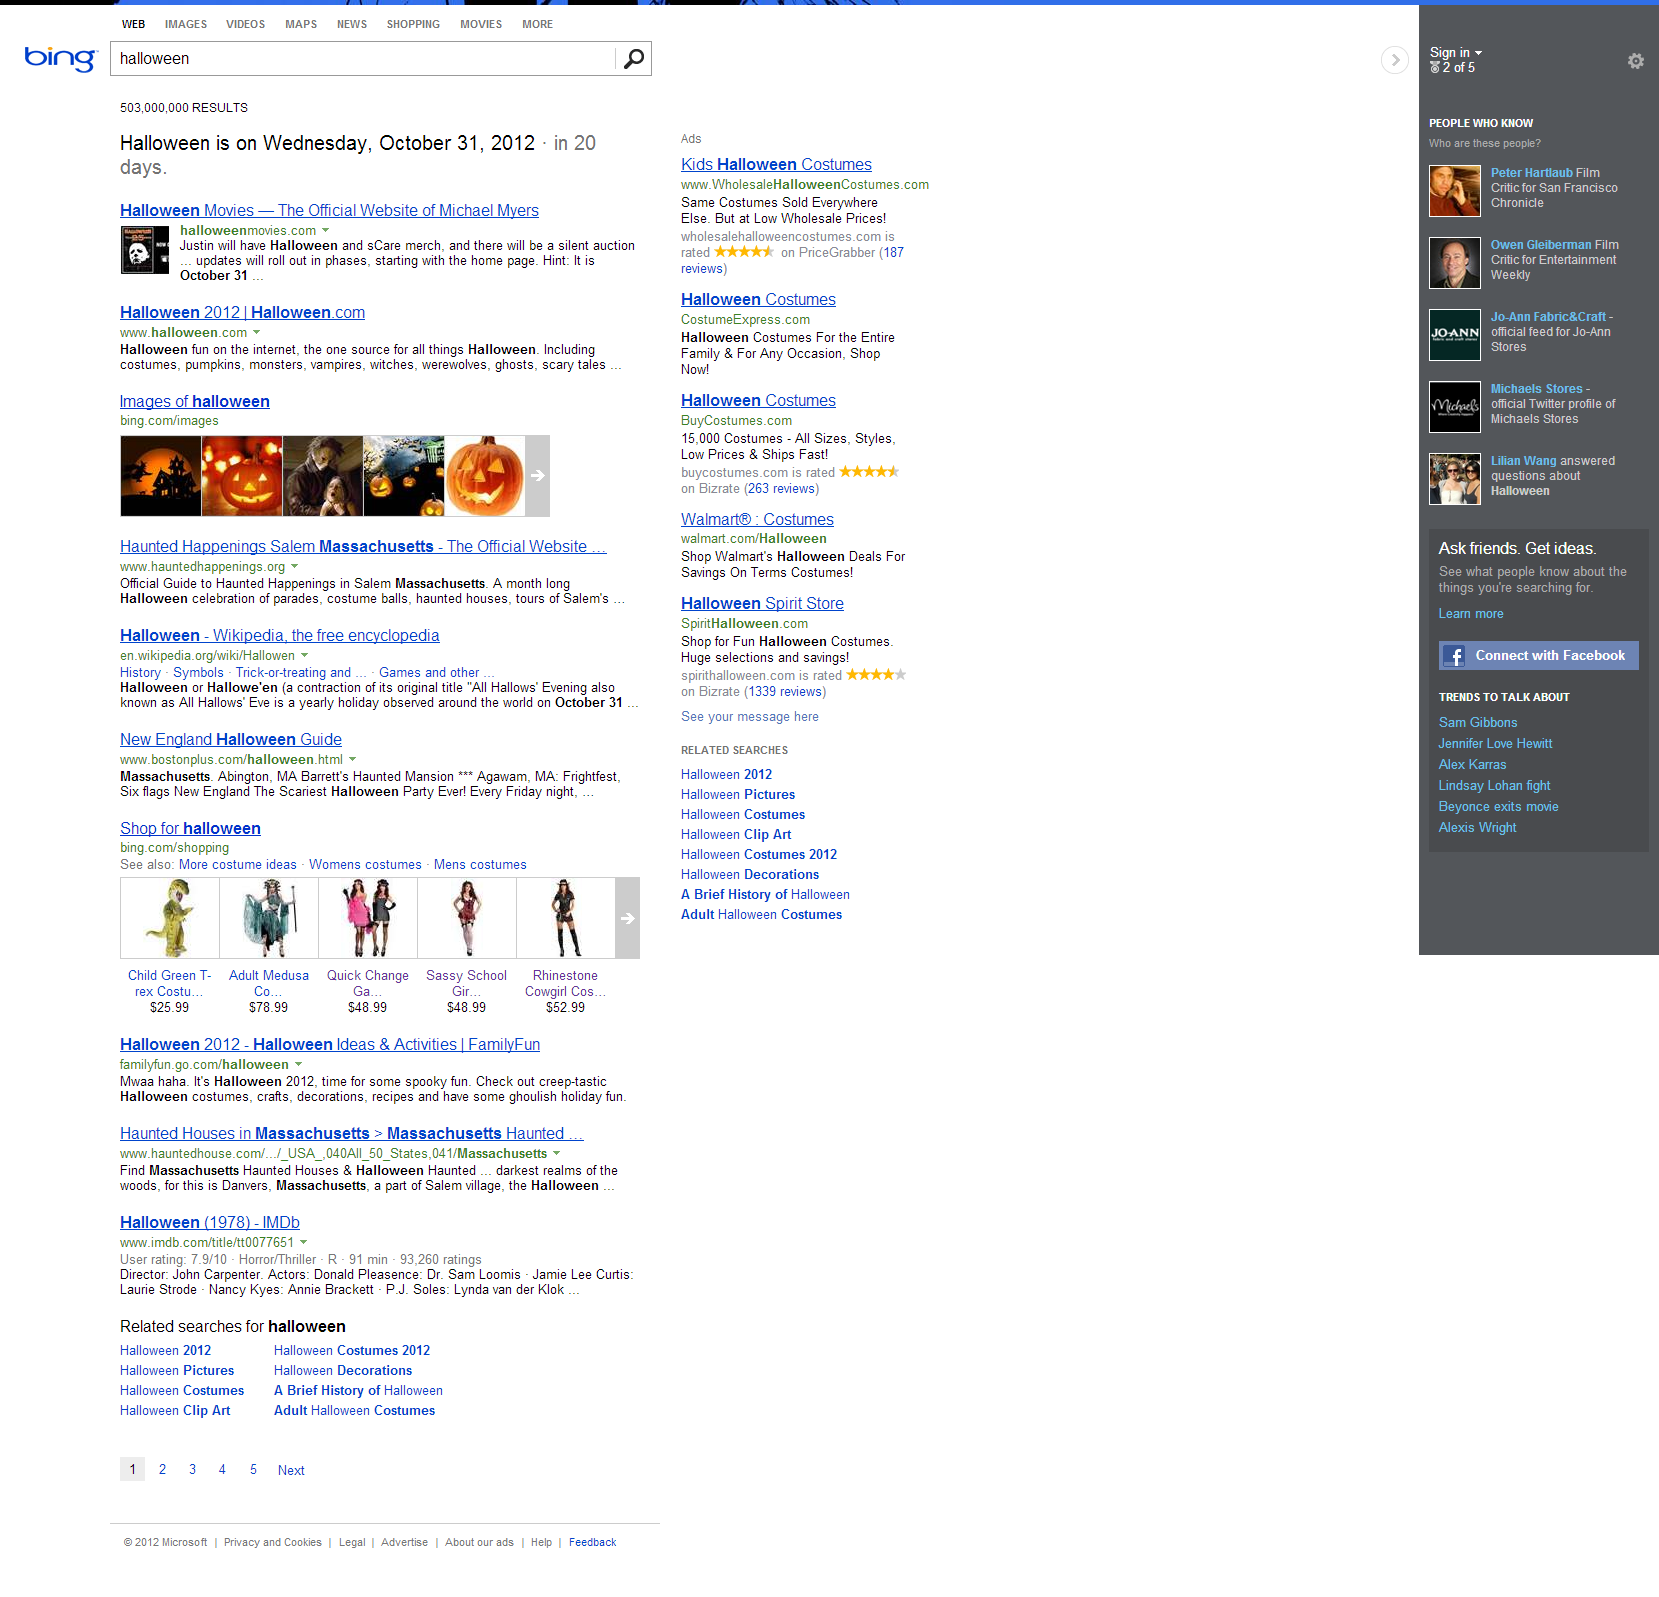 My Bing History: Bing Search Results - Not For Kids? NSFW?